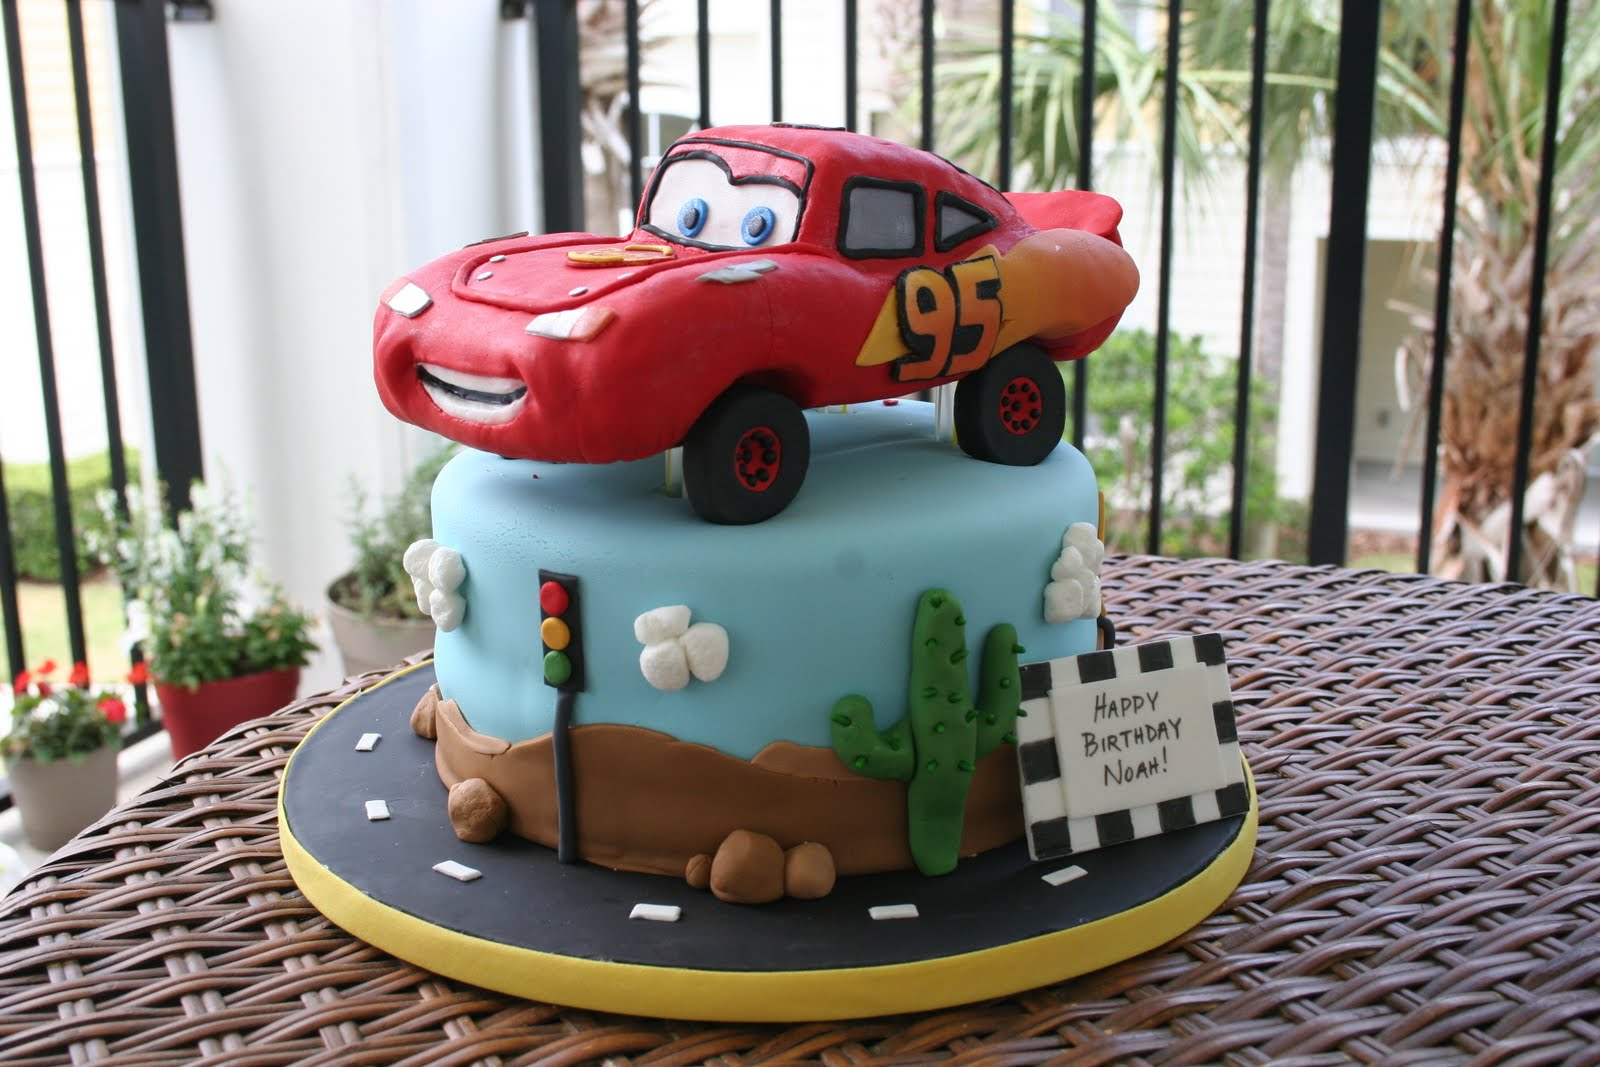 Birthday Cake Images With Car : Cars Cakes   Decoration Ideas Little Birthday Cakes